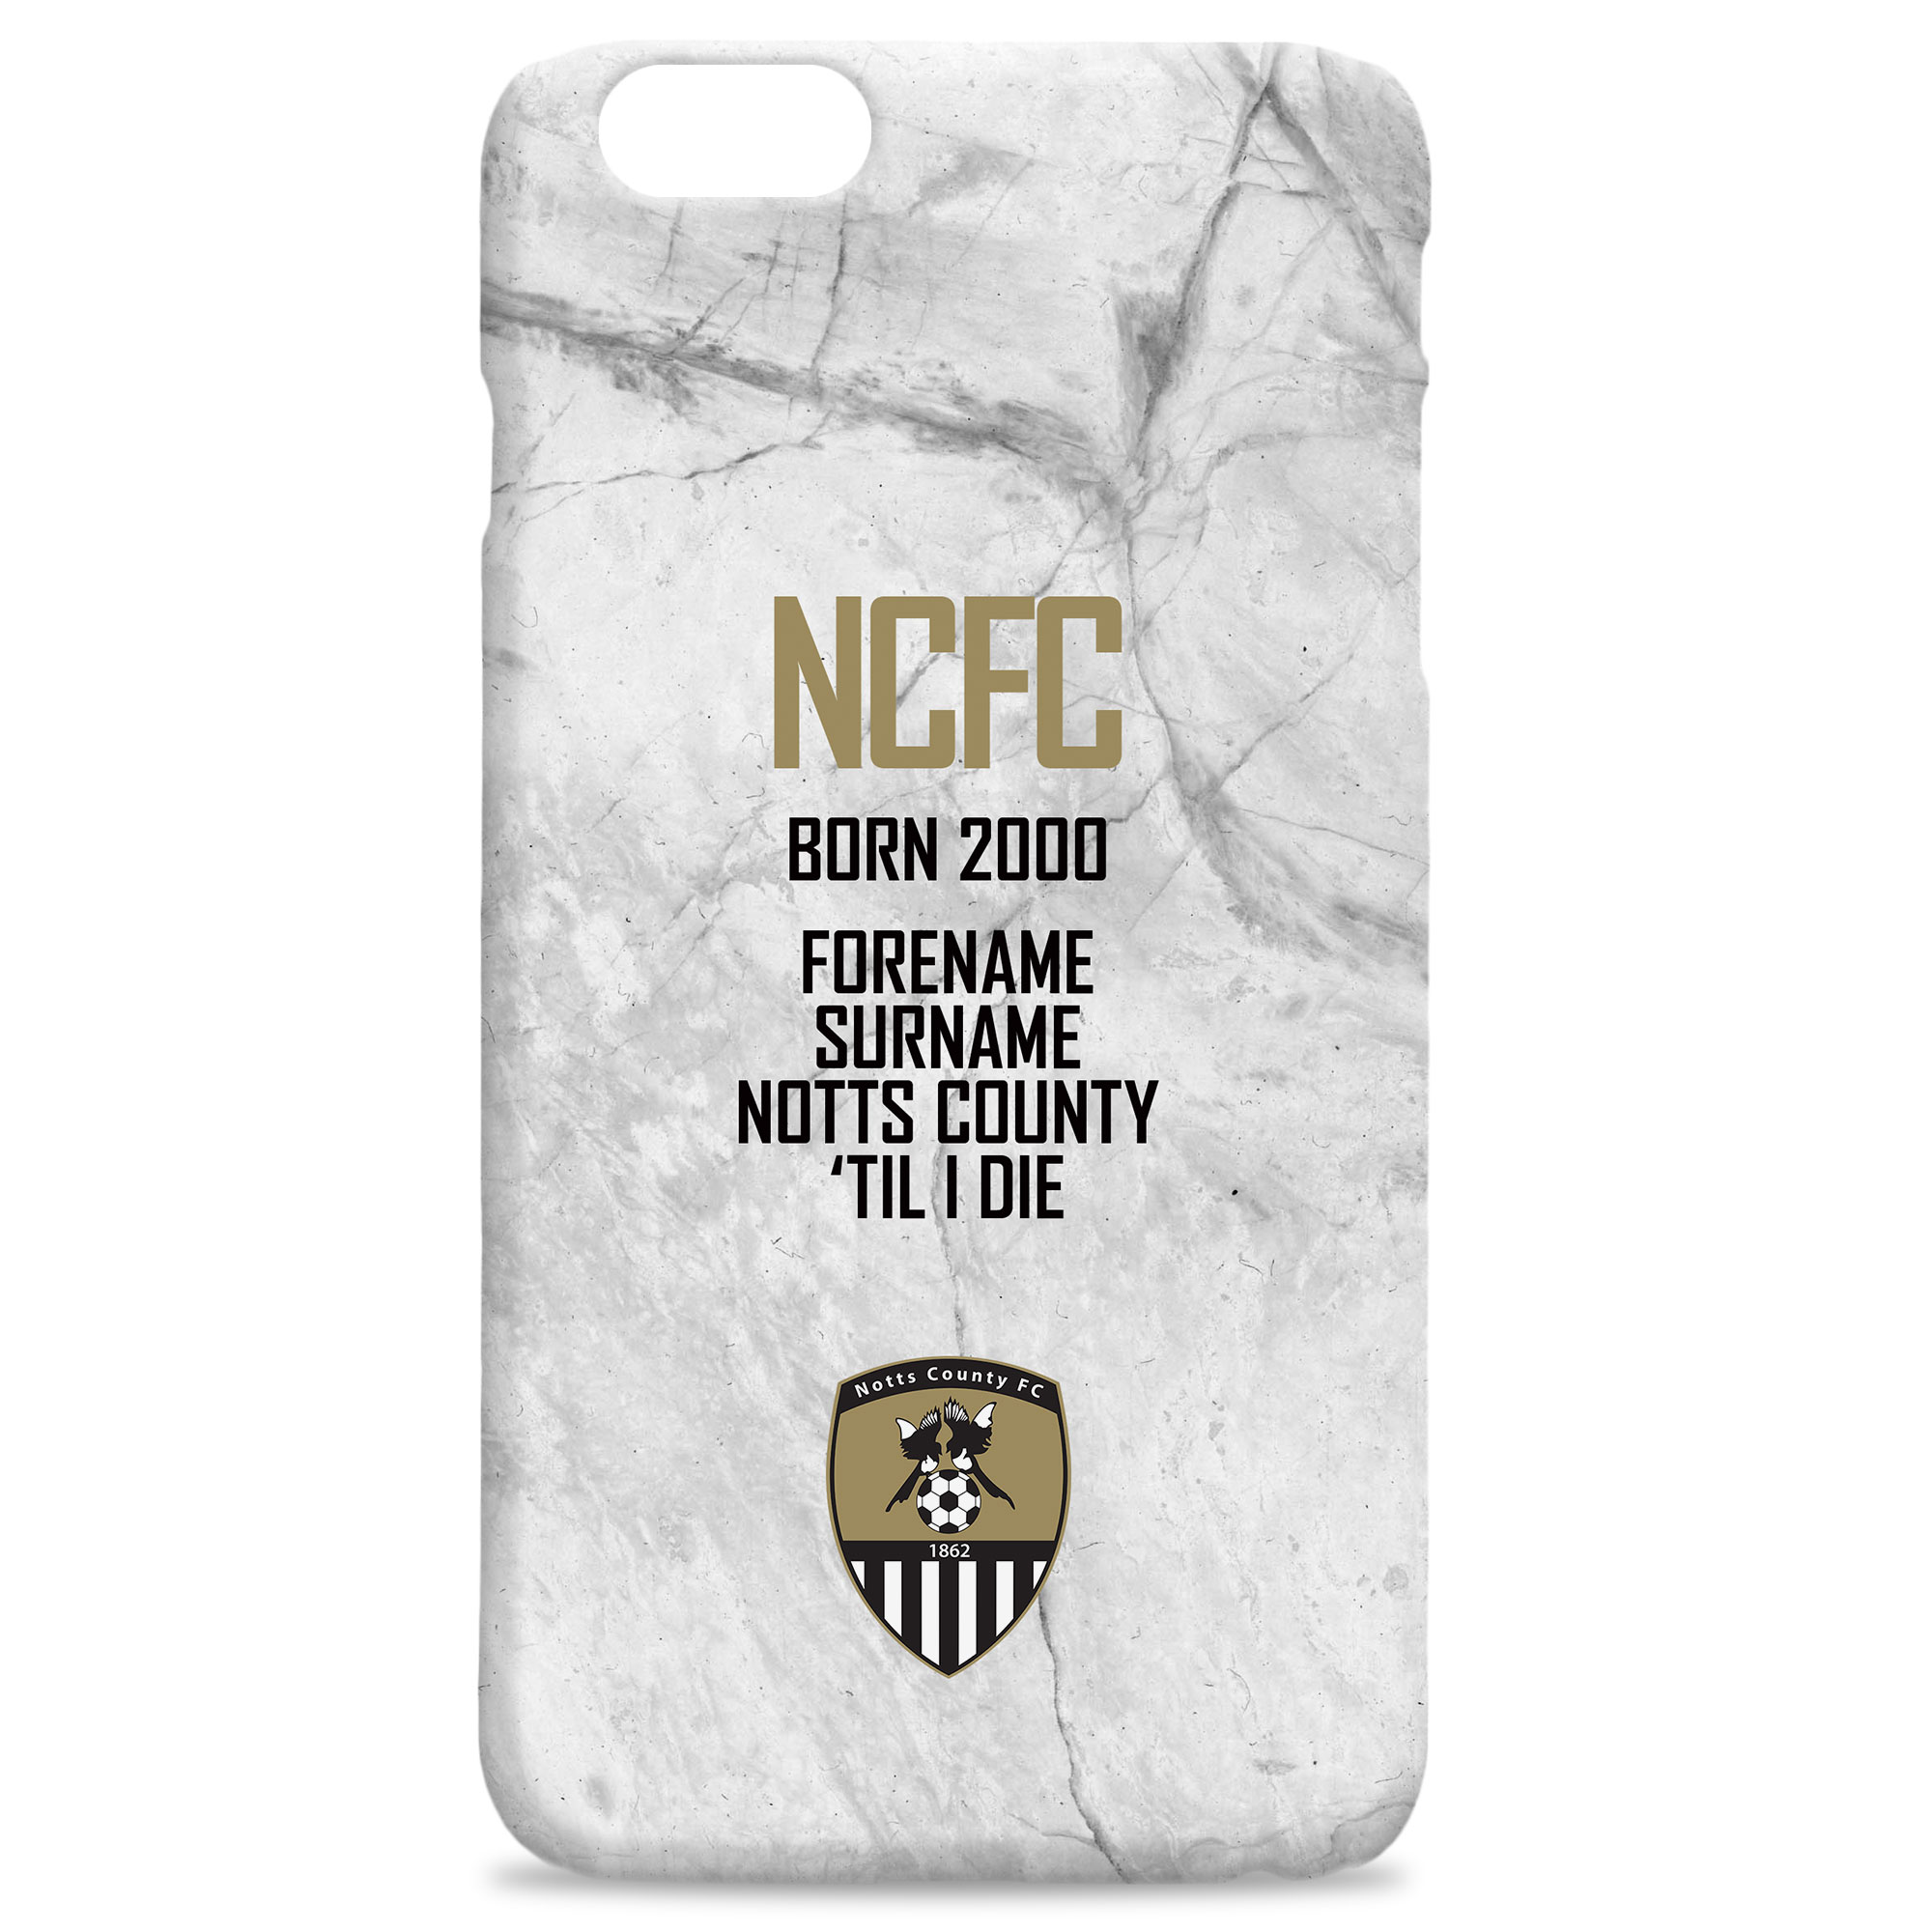 Notts County FC 'Til I Die Hard Back Phone Case